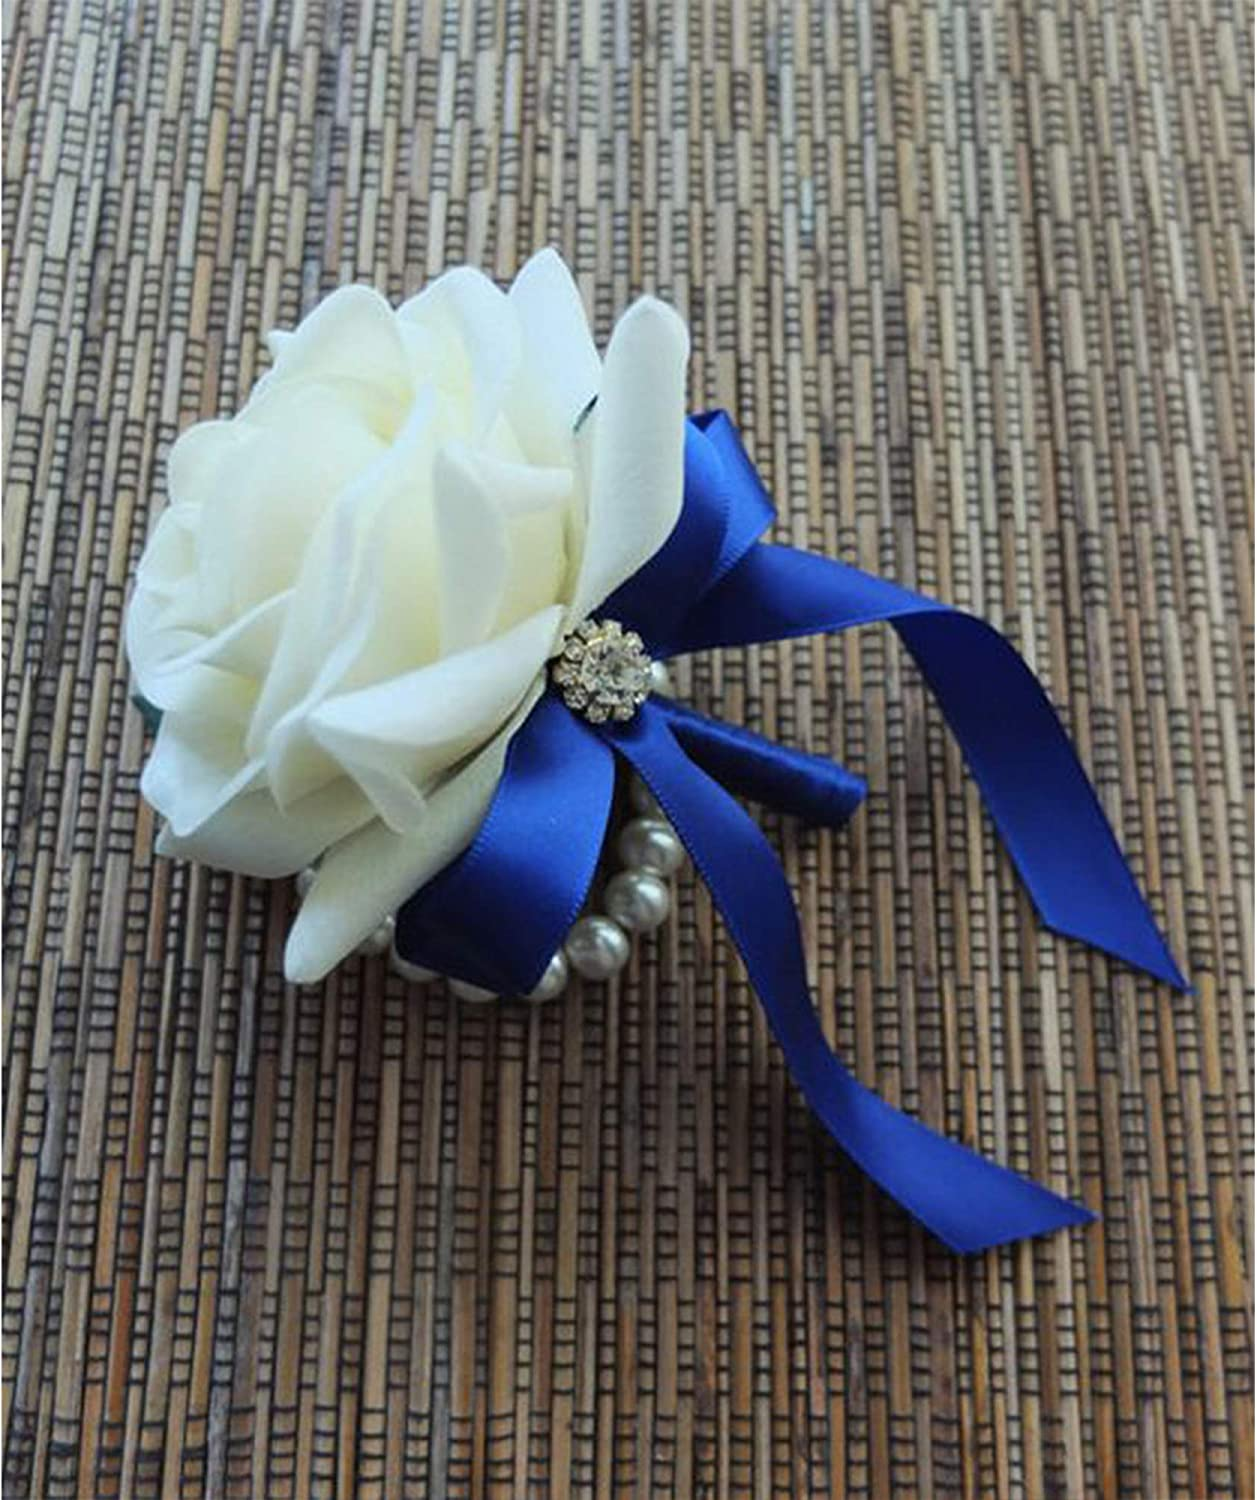 Wreath Baby Shower,Packing and Other Projects. 25 Yard Spool VATIN 1 inch Double Faced Polyester Satin Ribbon Royal Blue Perfect for Wedding